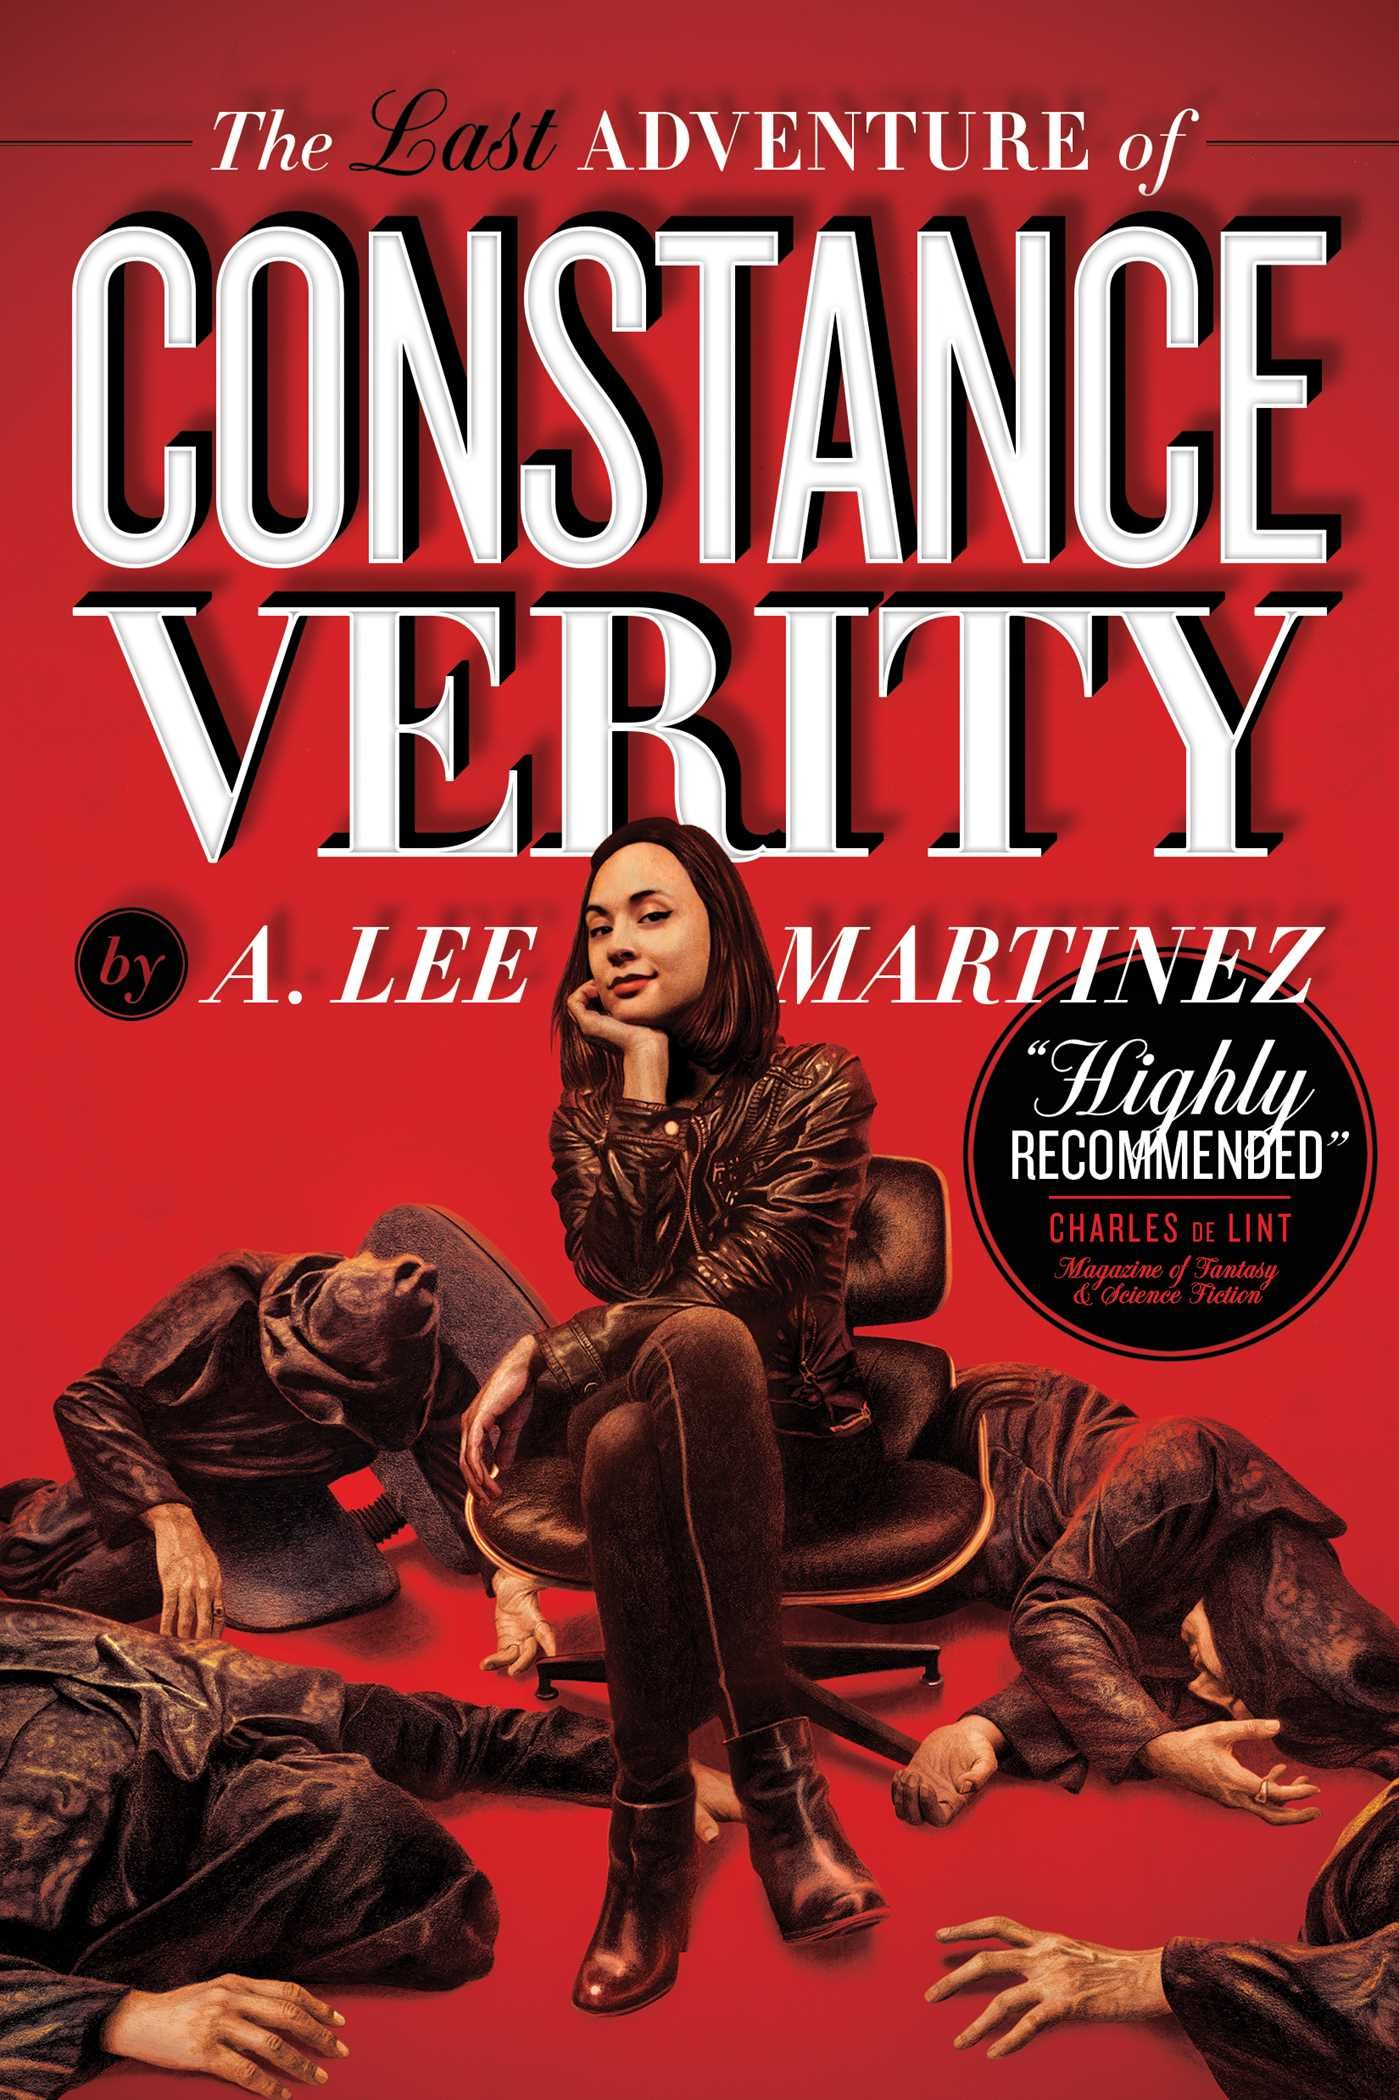 The Last Adventure of Constance Verity pdf